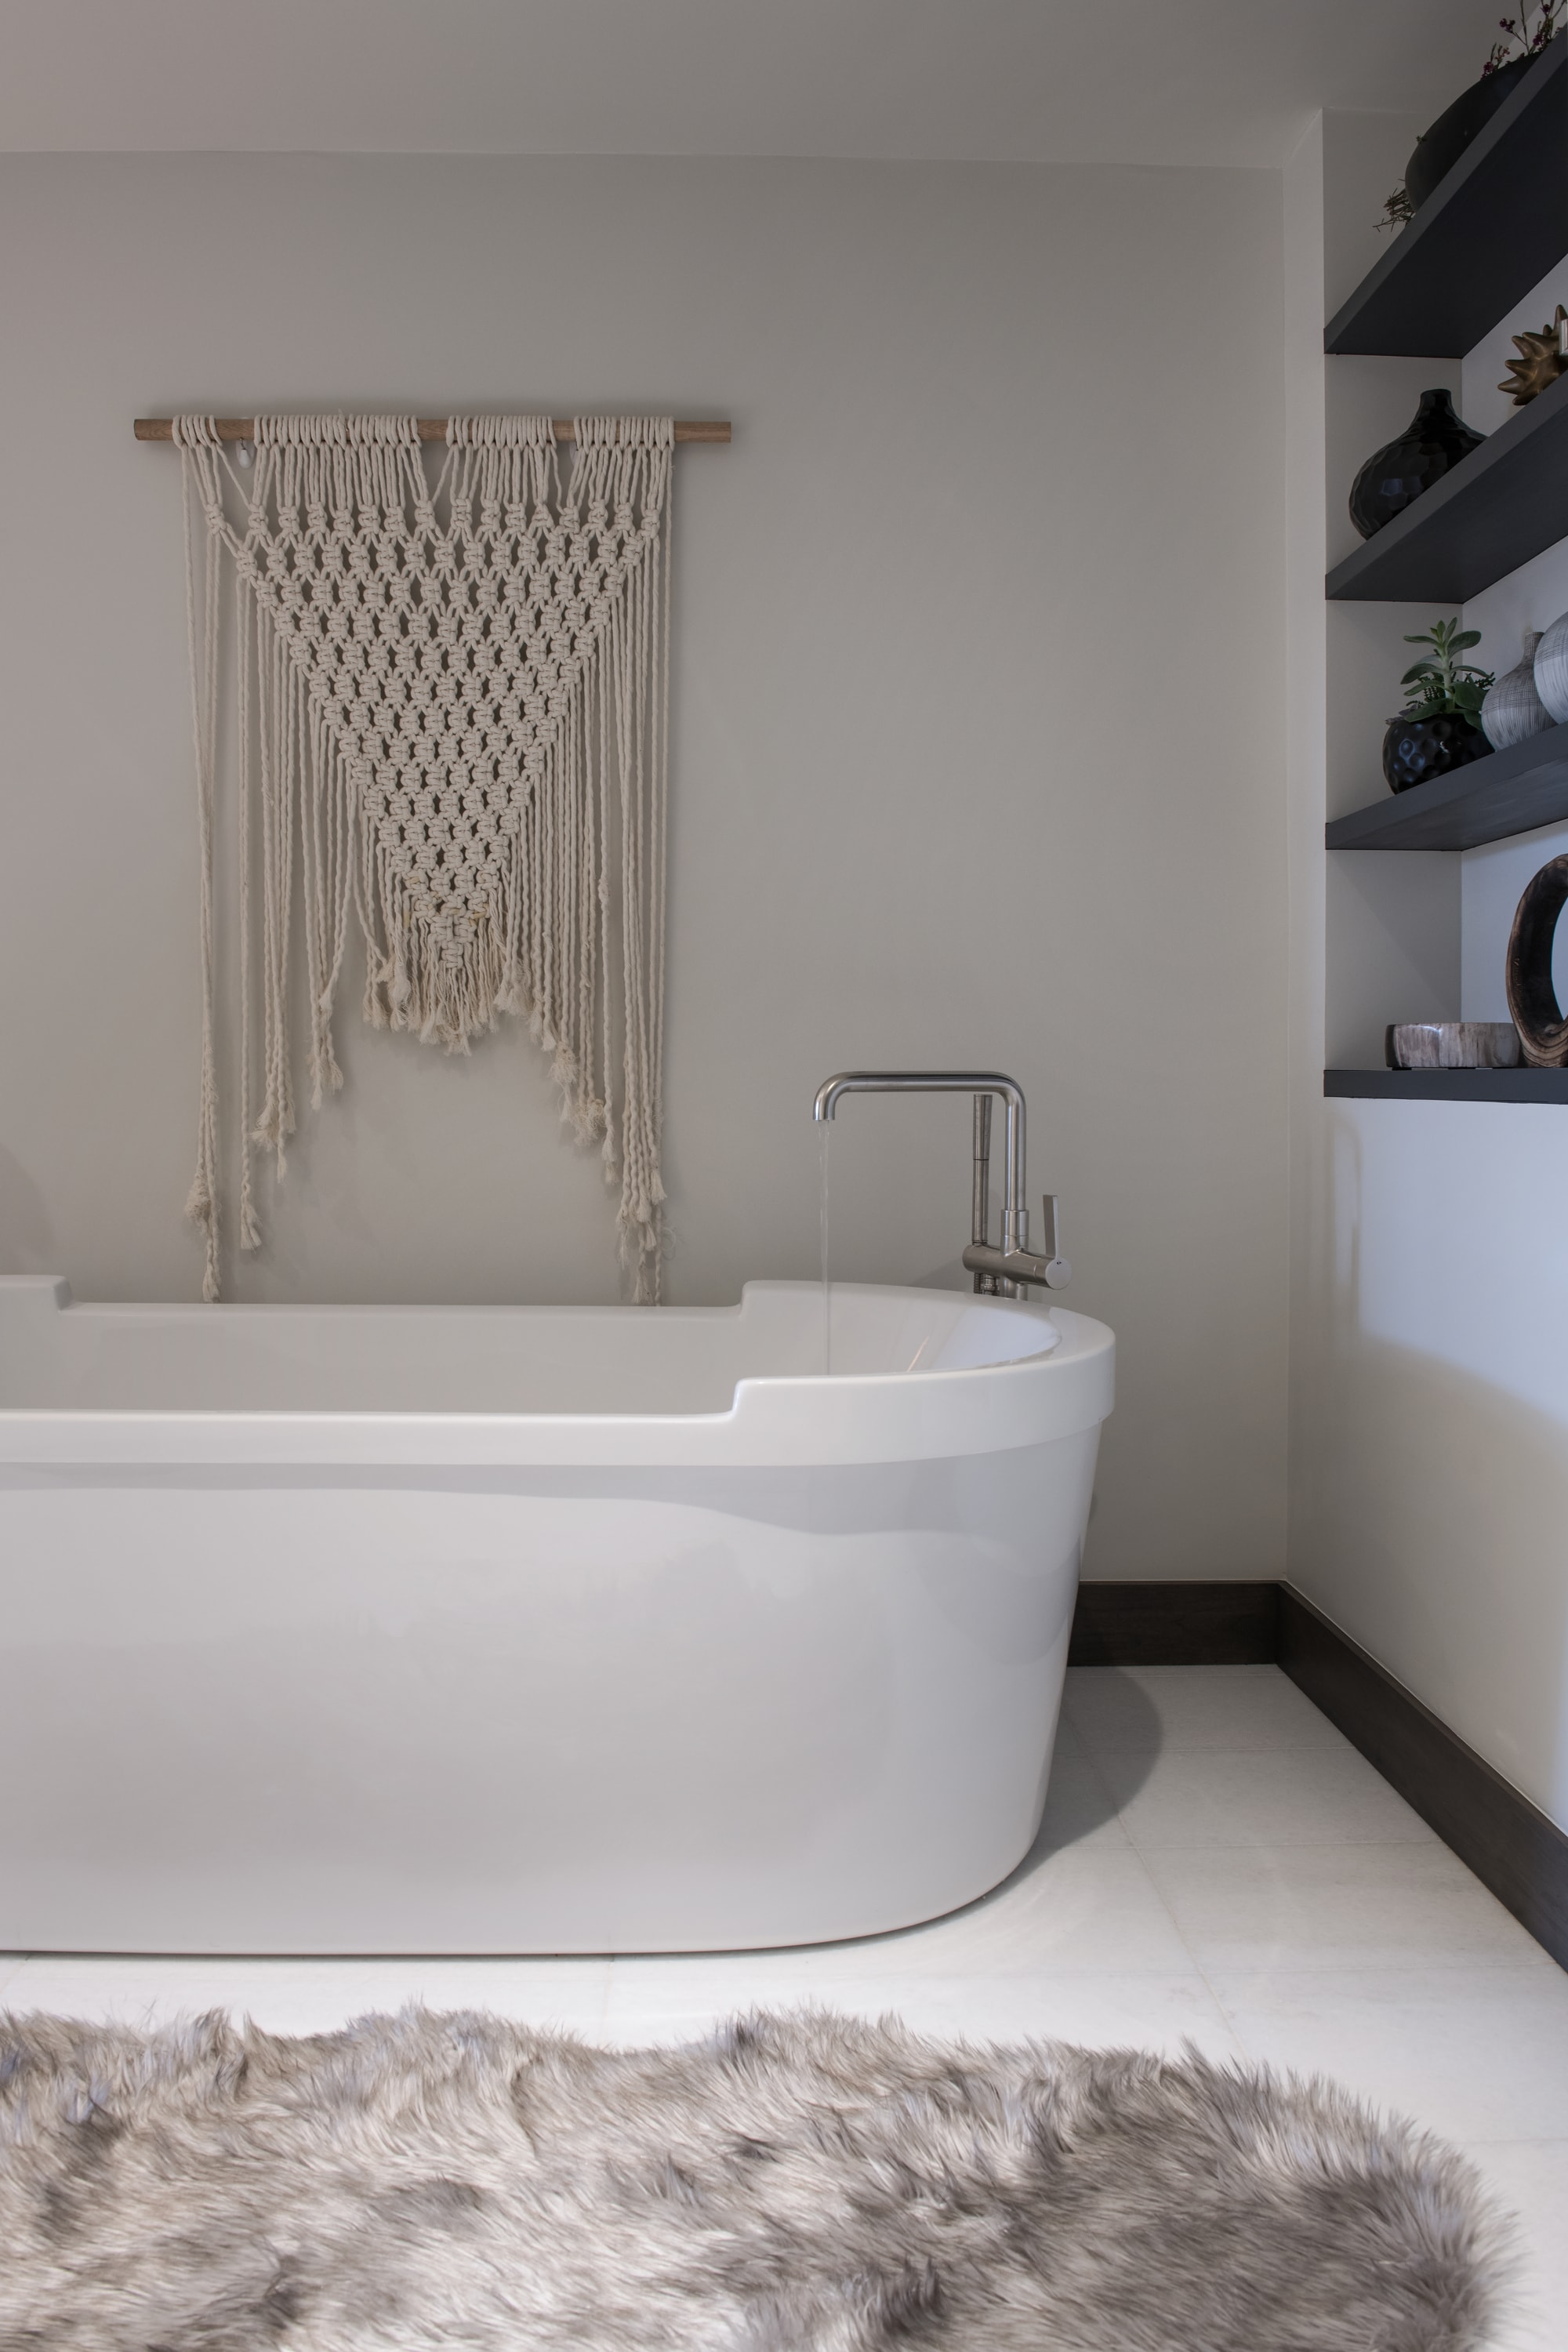 Modern bath tub with faucet